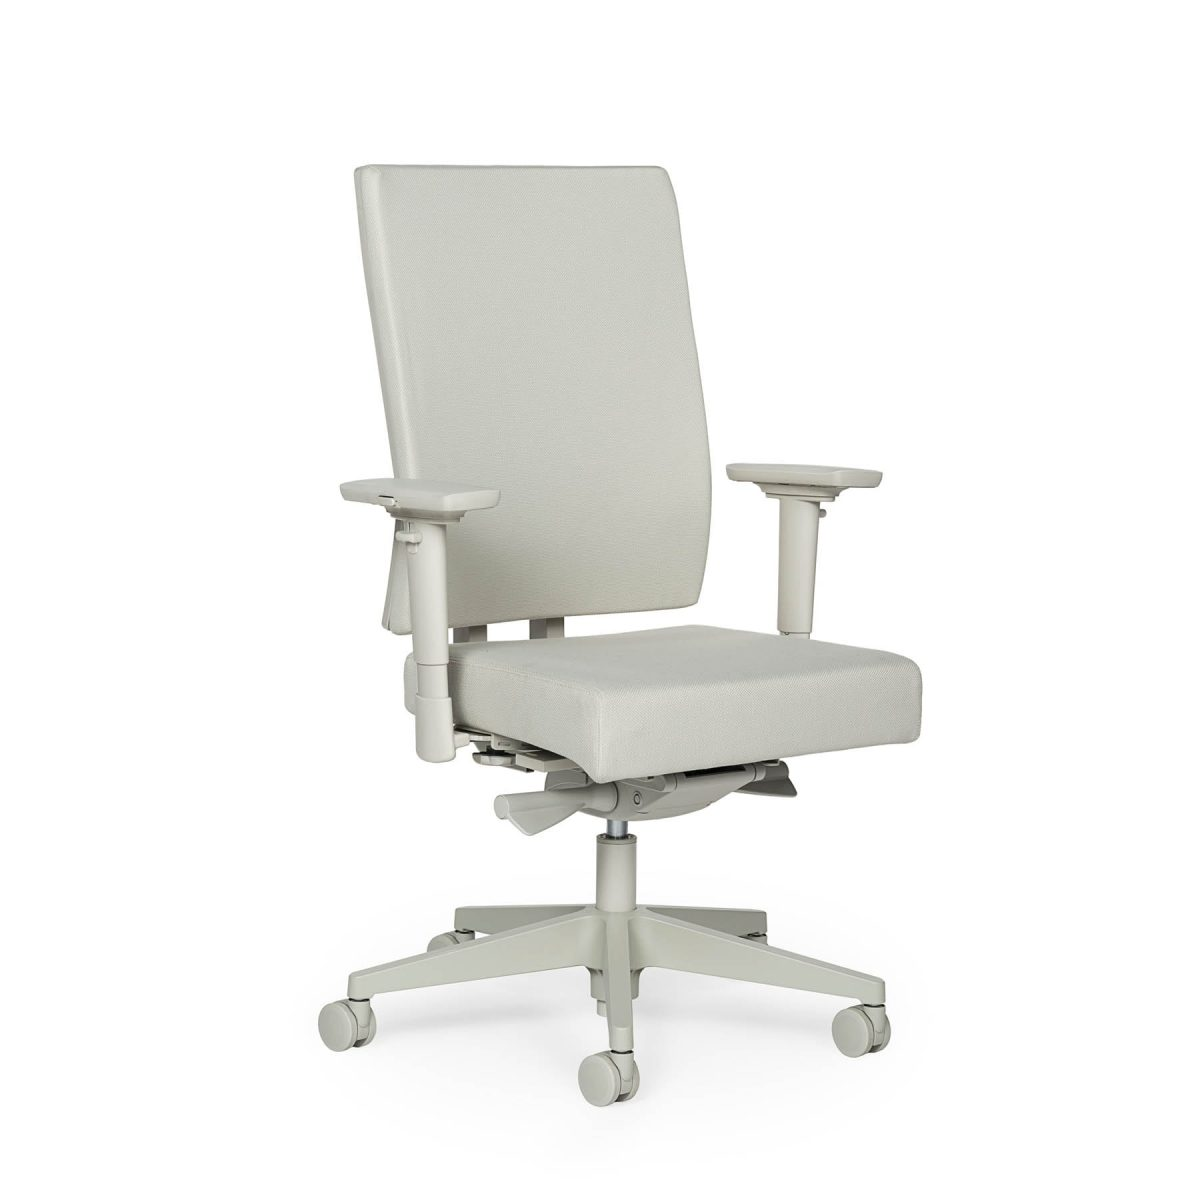 Boring Task Chair Office Chair Lensvelt Bureaustoel Project Thuiswerken